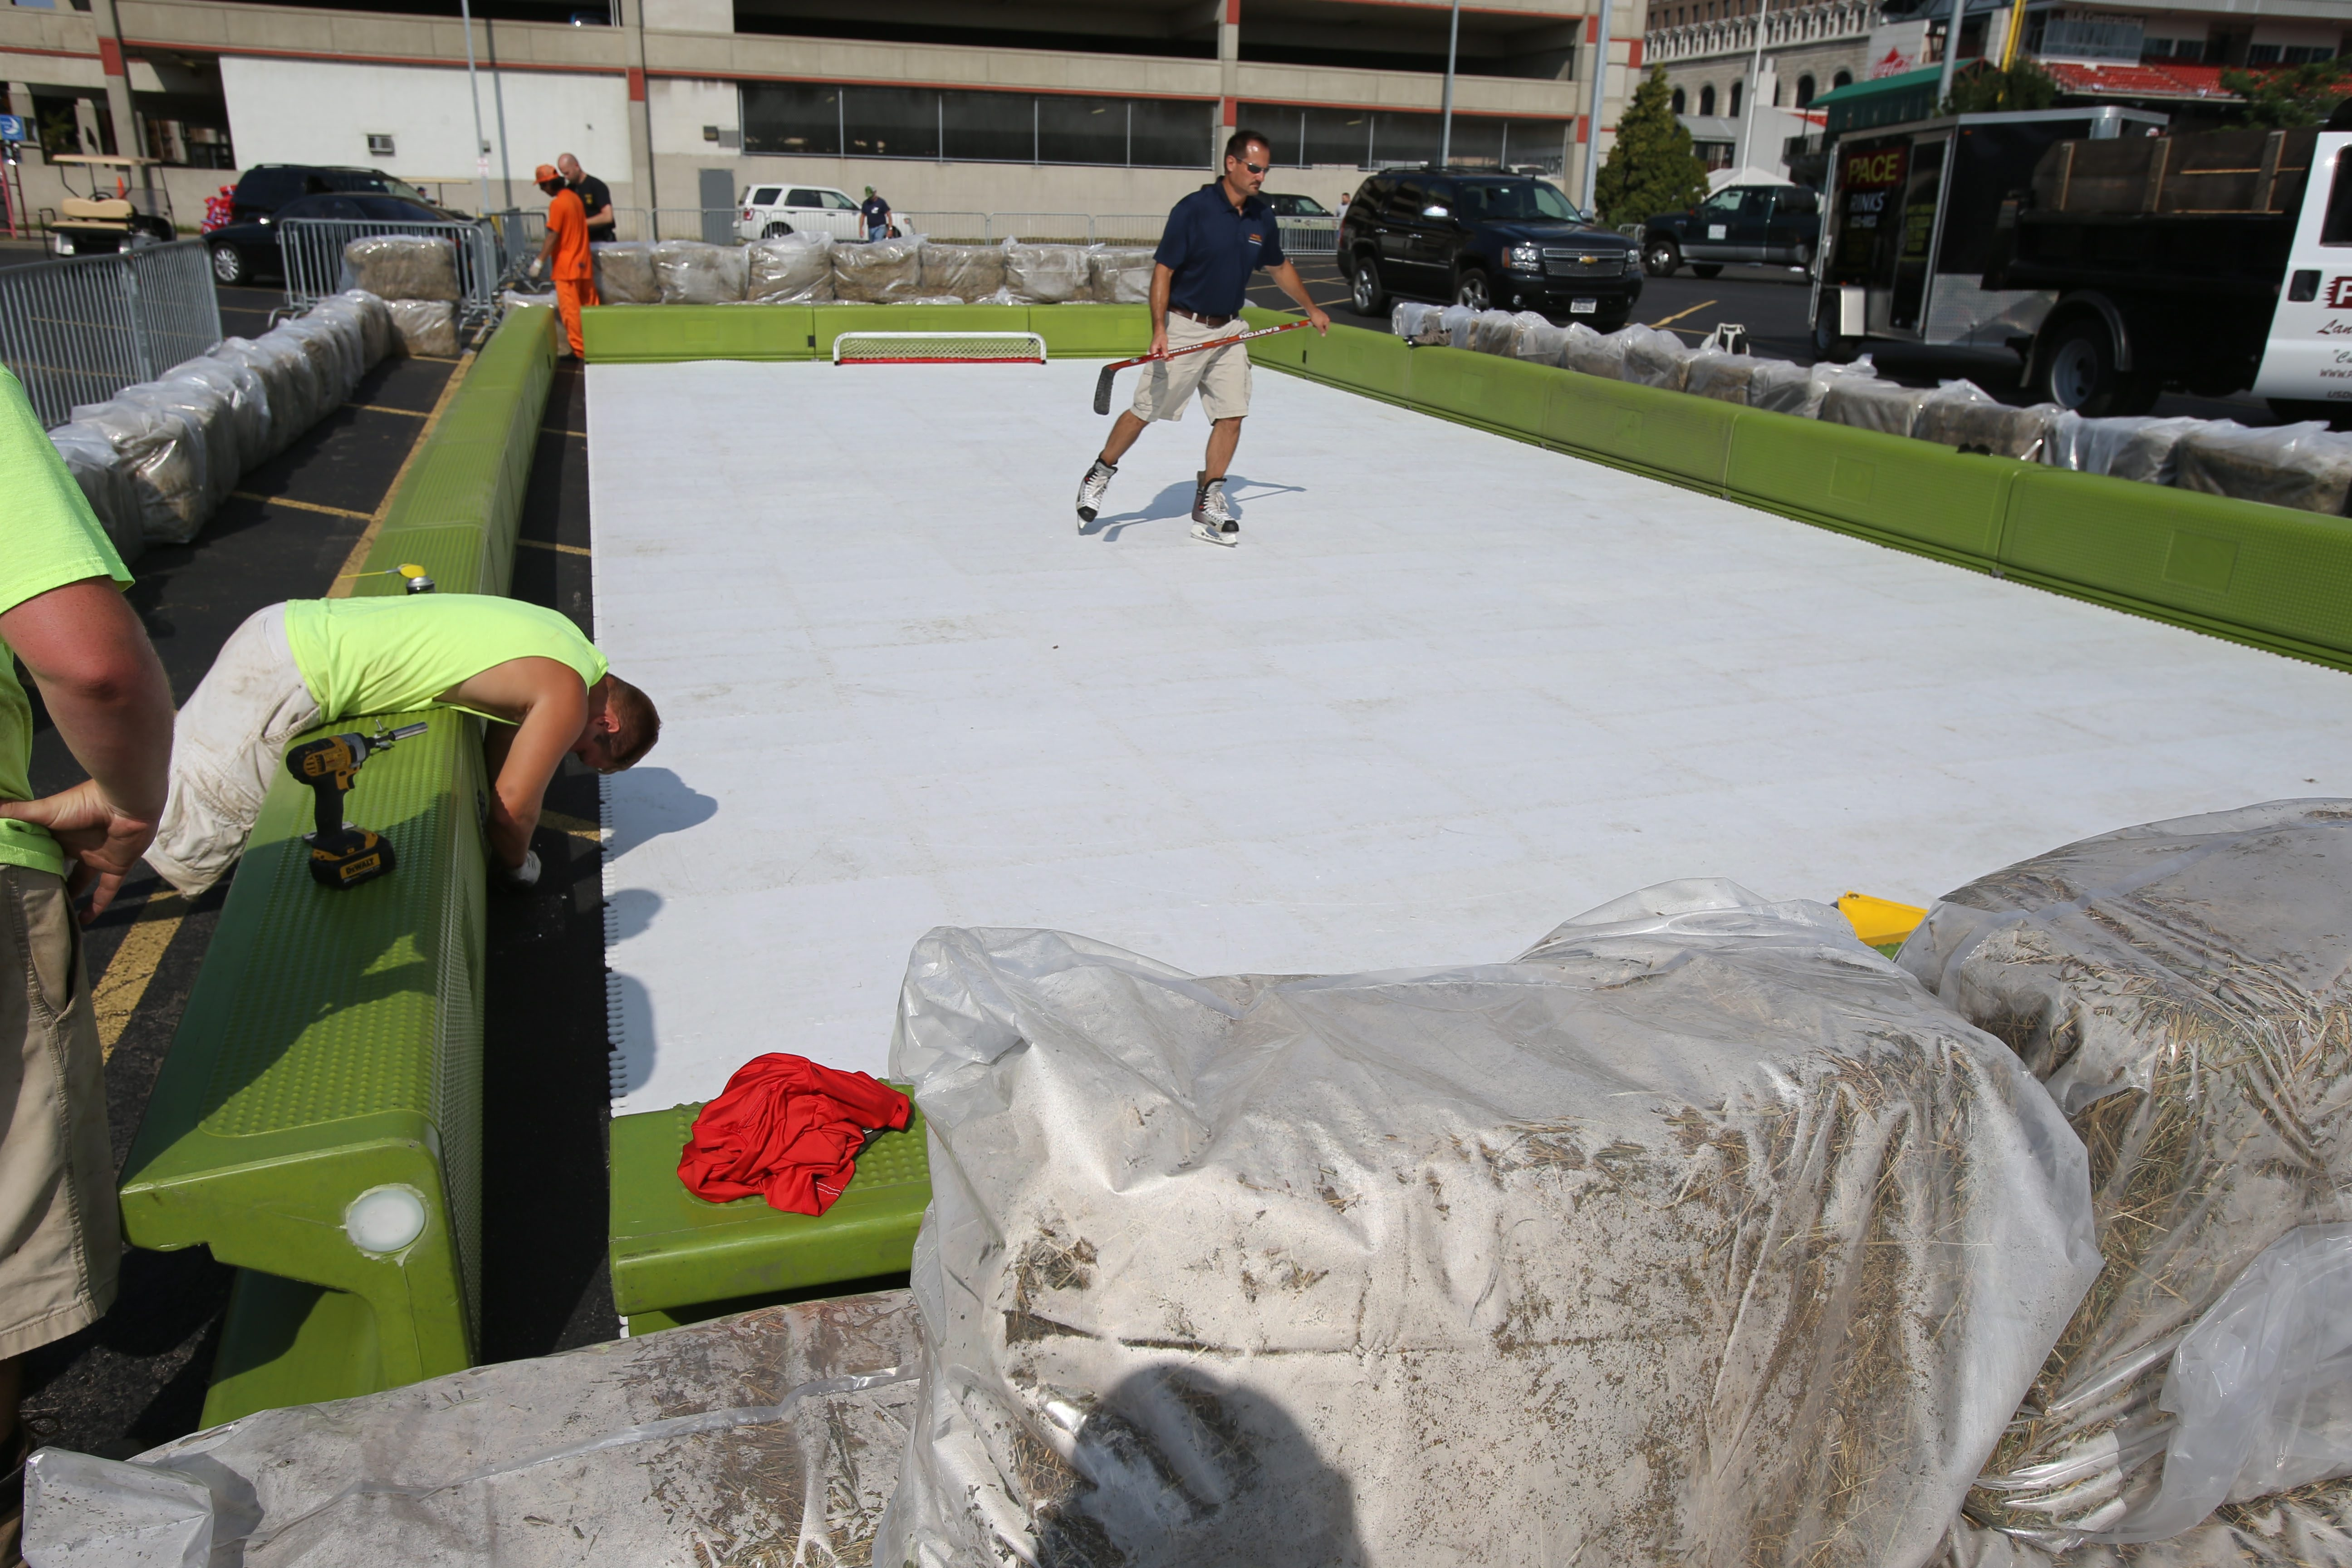 Mike Pace, owner of Pace Landscaping and Ice Rinks in Hamburg, skates on a Can-Ice artificial surface rink in the parking lot behind Coca-Cola Field, as workers assemble it in preparation for the Labatt Blue Wingman Hockey Tournament.